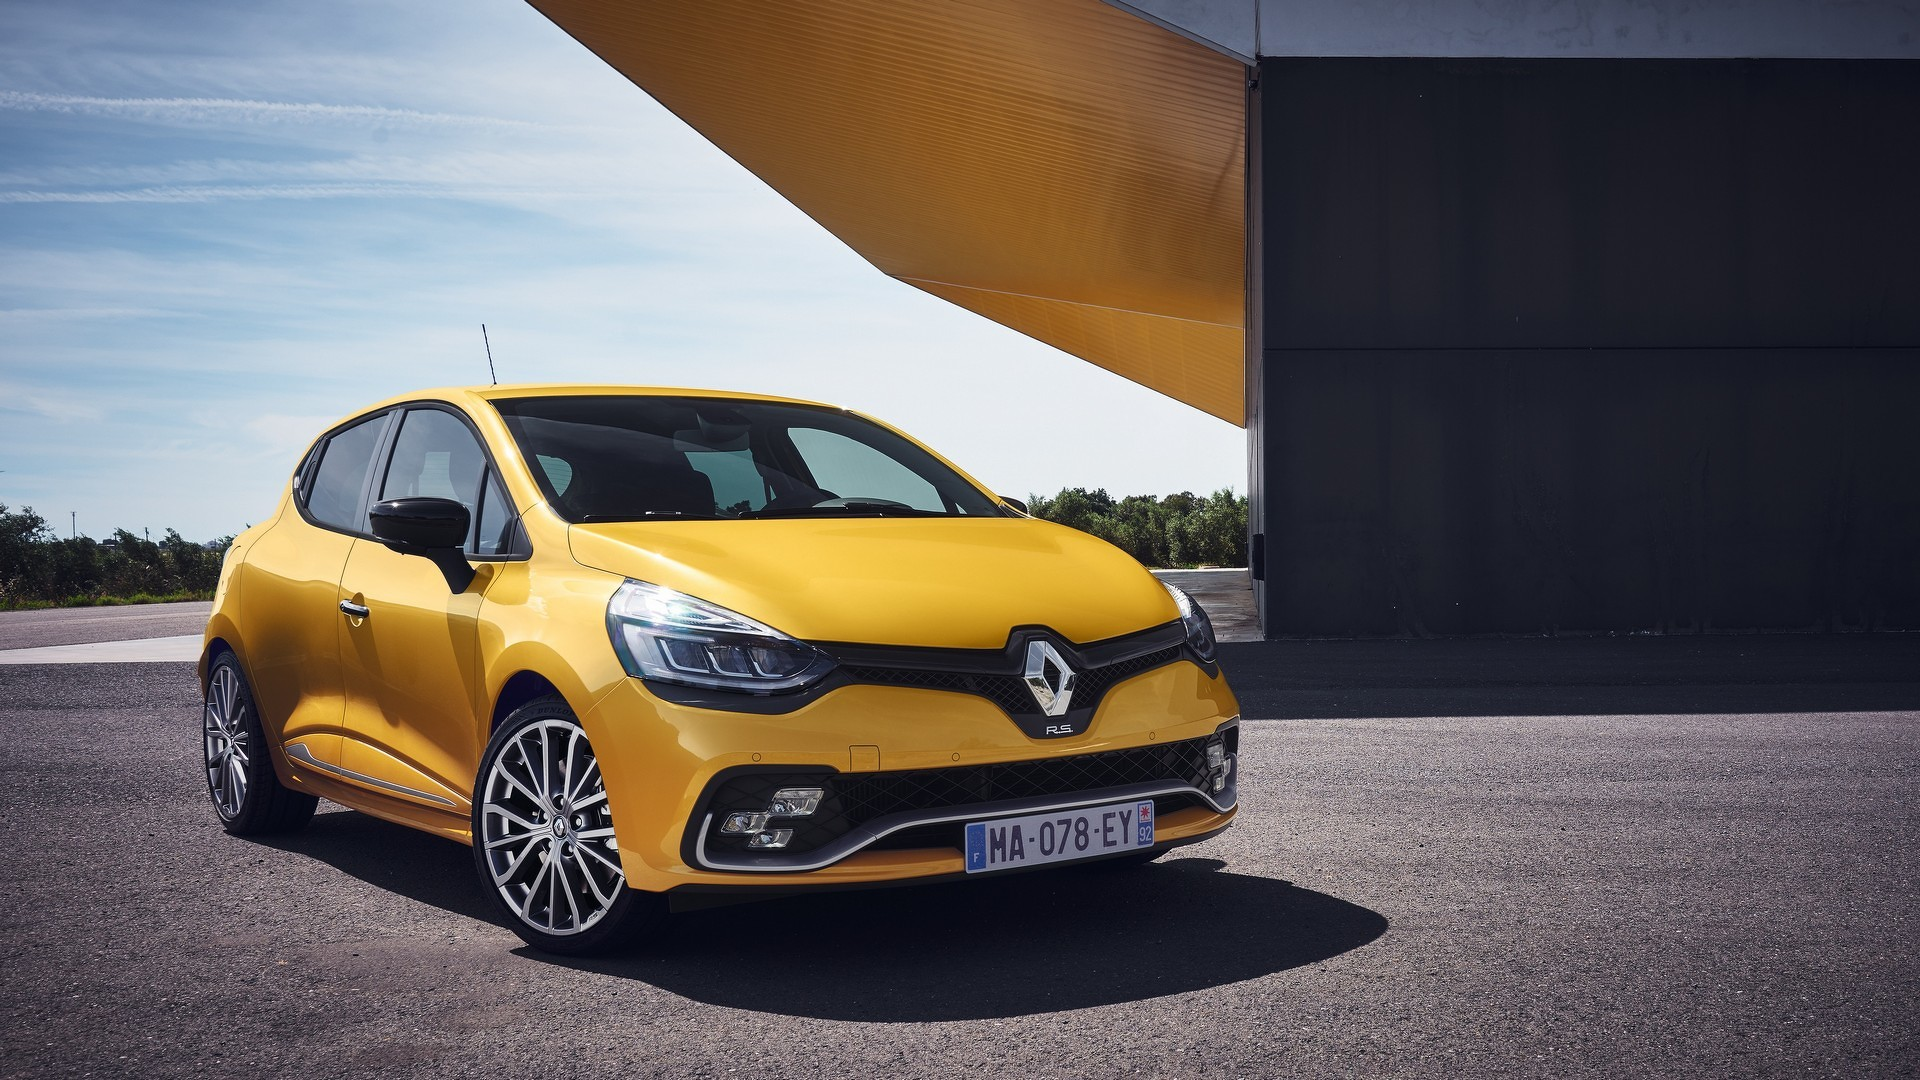 Renault Clio RS refreshed and updated with 220 hp in Trophy guise